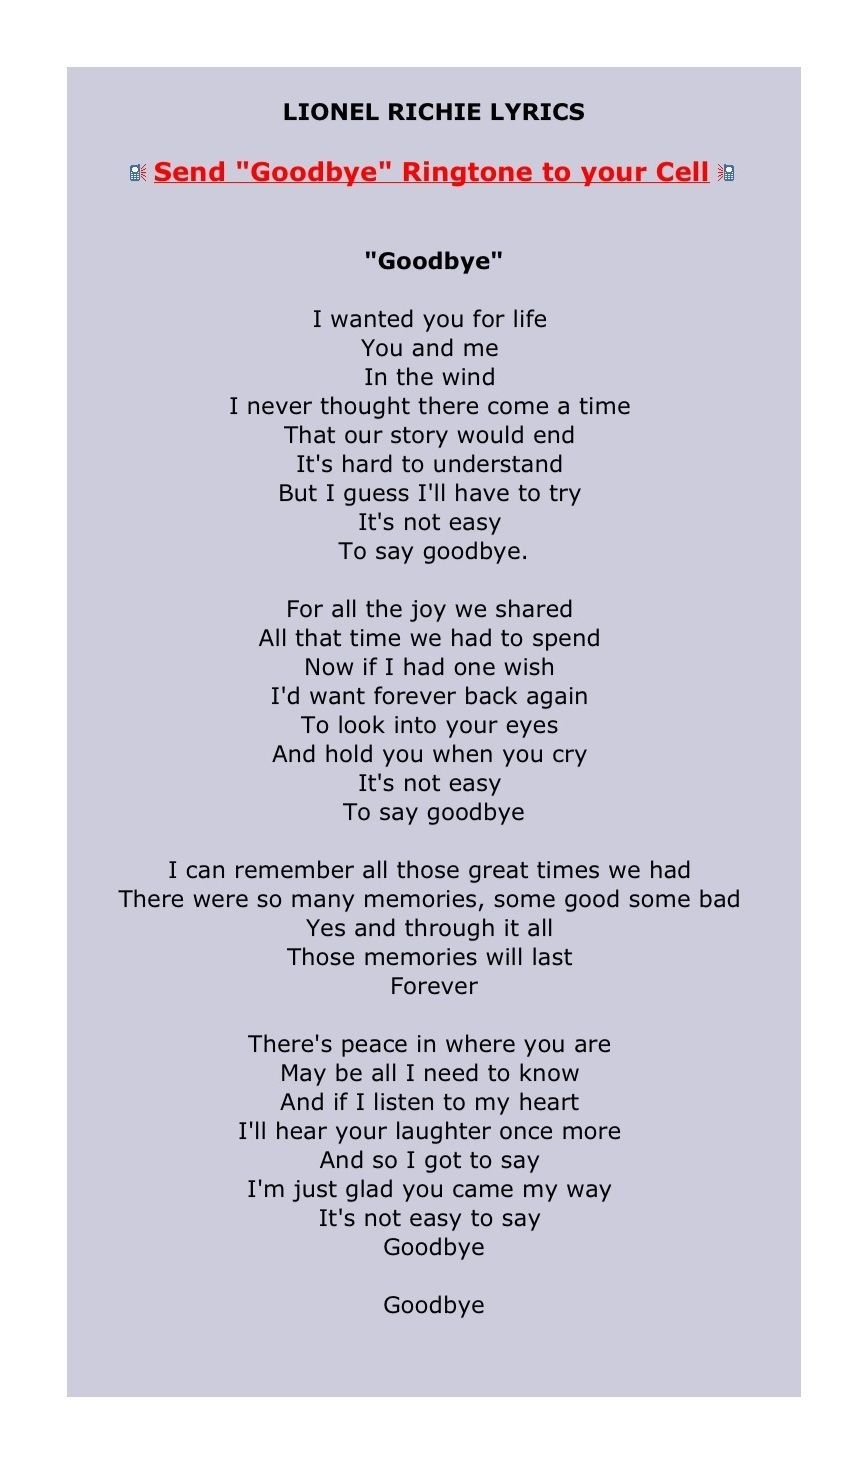 Goodbye - Lionel Richie This is what my Dad would sing